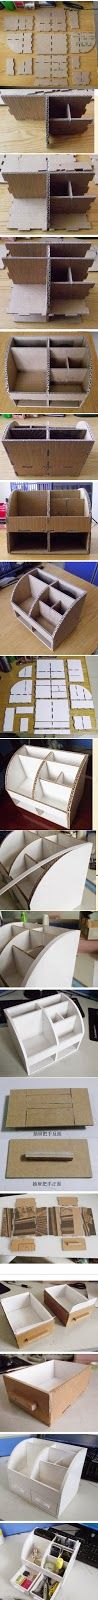 My DIY Projects: How To Make Carton Office Stationery Box